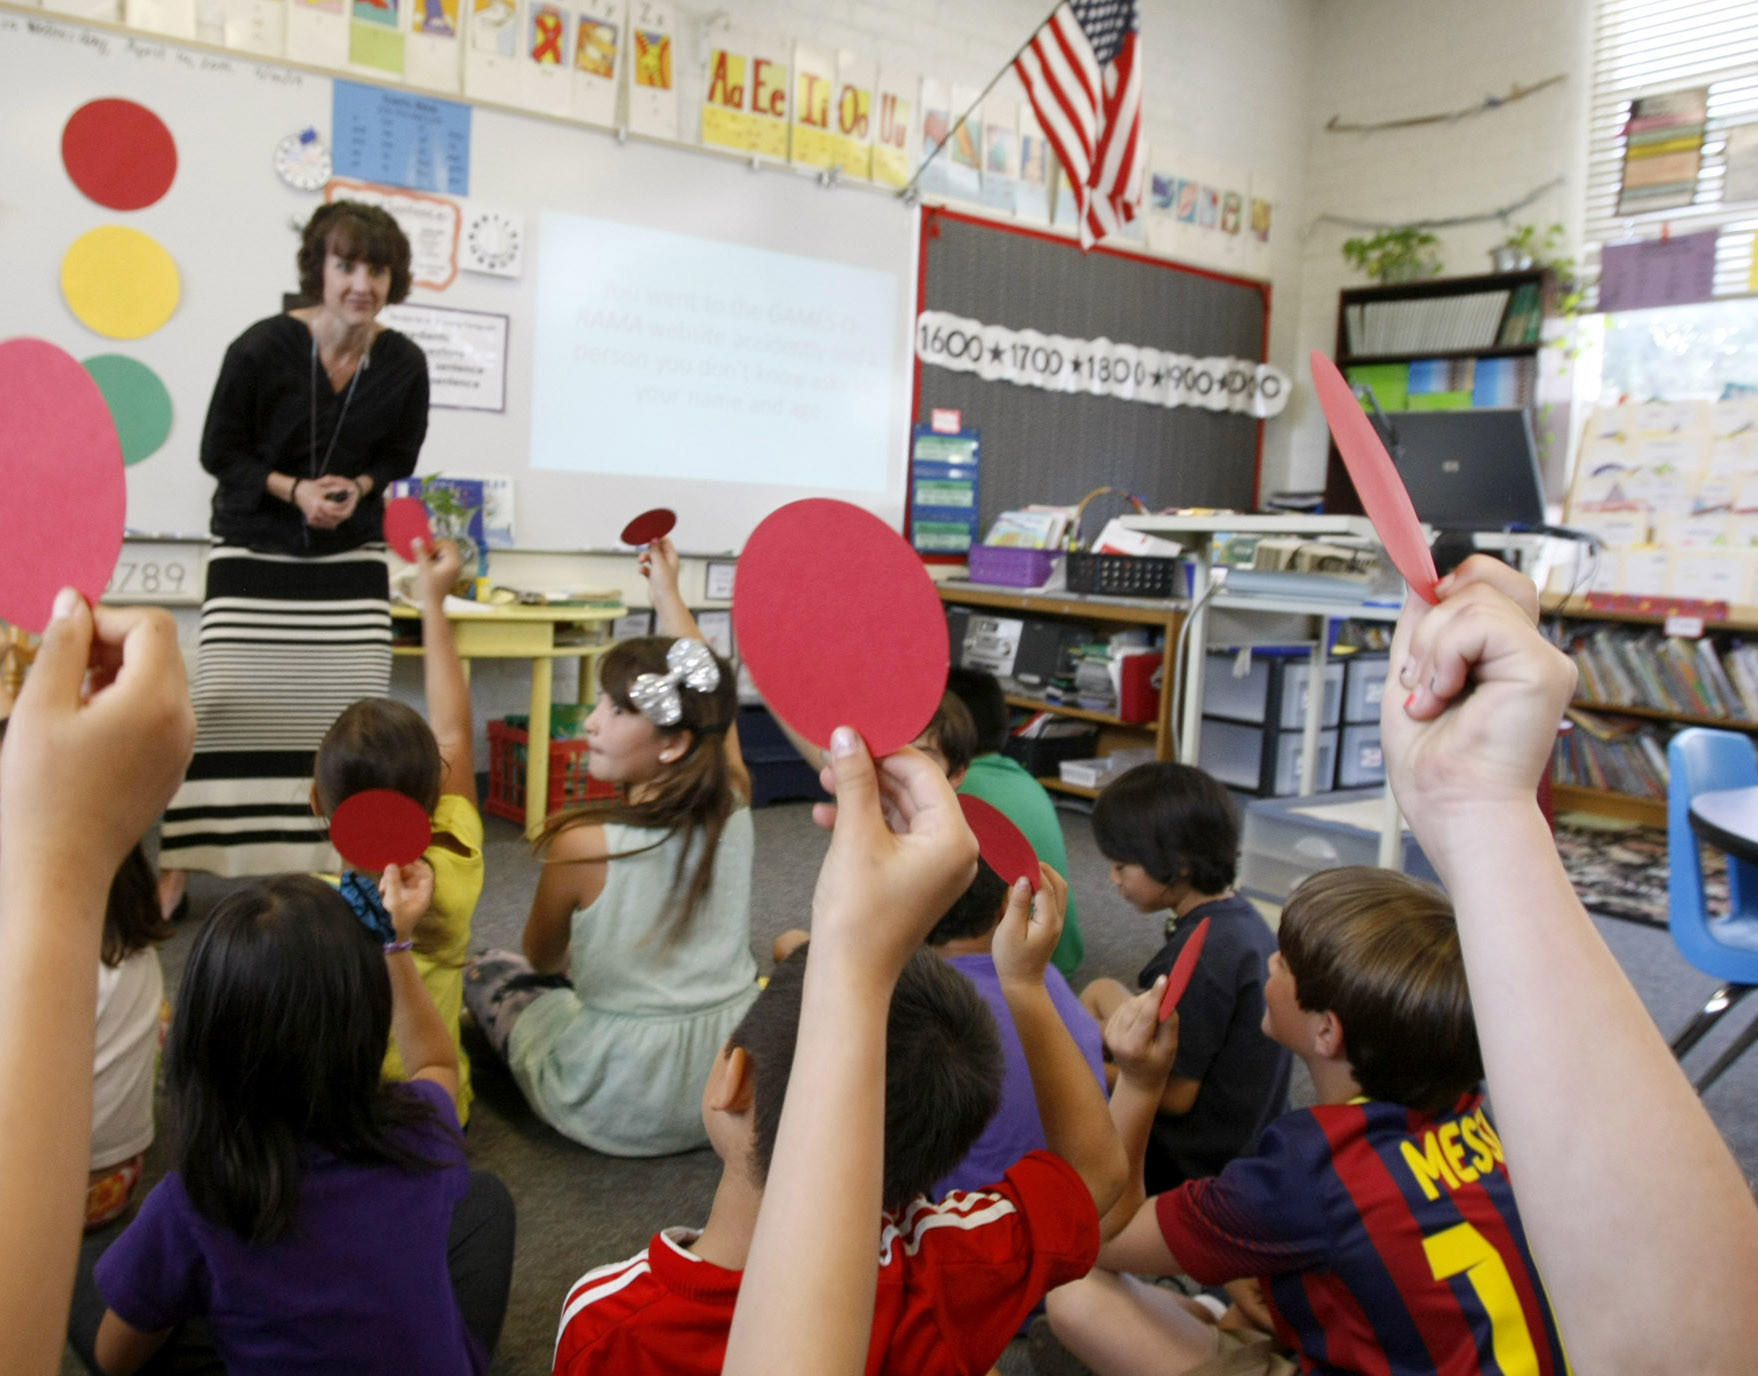 Second grade teacher Pam Watts teaches her students about digital citizenship in her Paradise Canyon Elementary School classroom in La Cañada Flintridge on Wednesday, April 16, 2014. Above, students answer a question with a red circle indicating the question was not a safe activity to do while on the internet. Her students are learning how to be safe and cautious while using the internet.